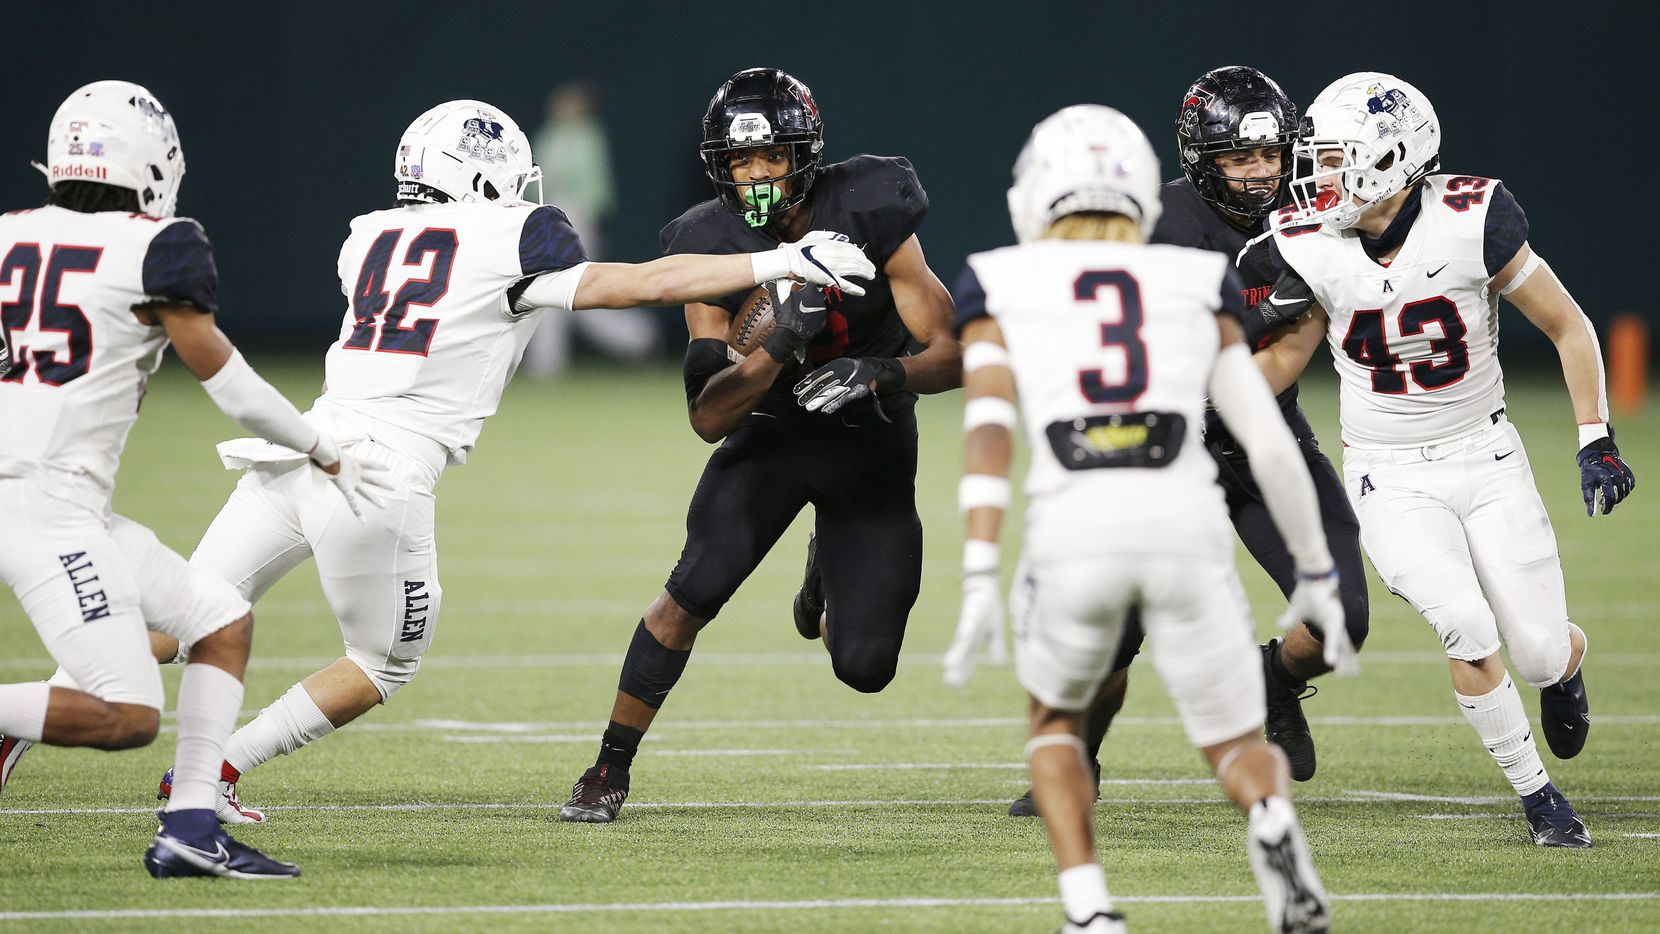 Euless Trinity junior running back Ollie Gordon, center, looks for room against the Allen defense during the first half of a high school Class 6A Division I Region I semifinal football game at Globe Life Park in Arlington, Saturday, December 26, 2020.